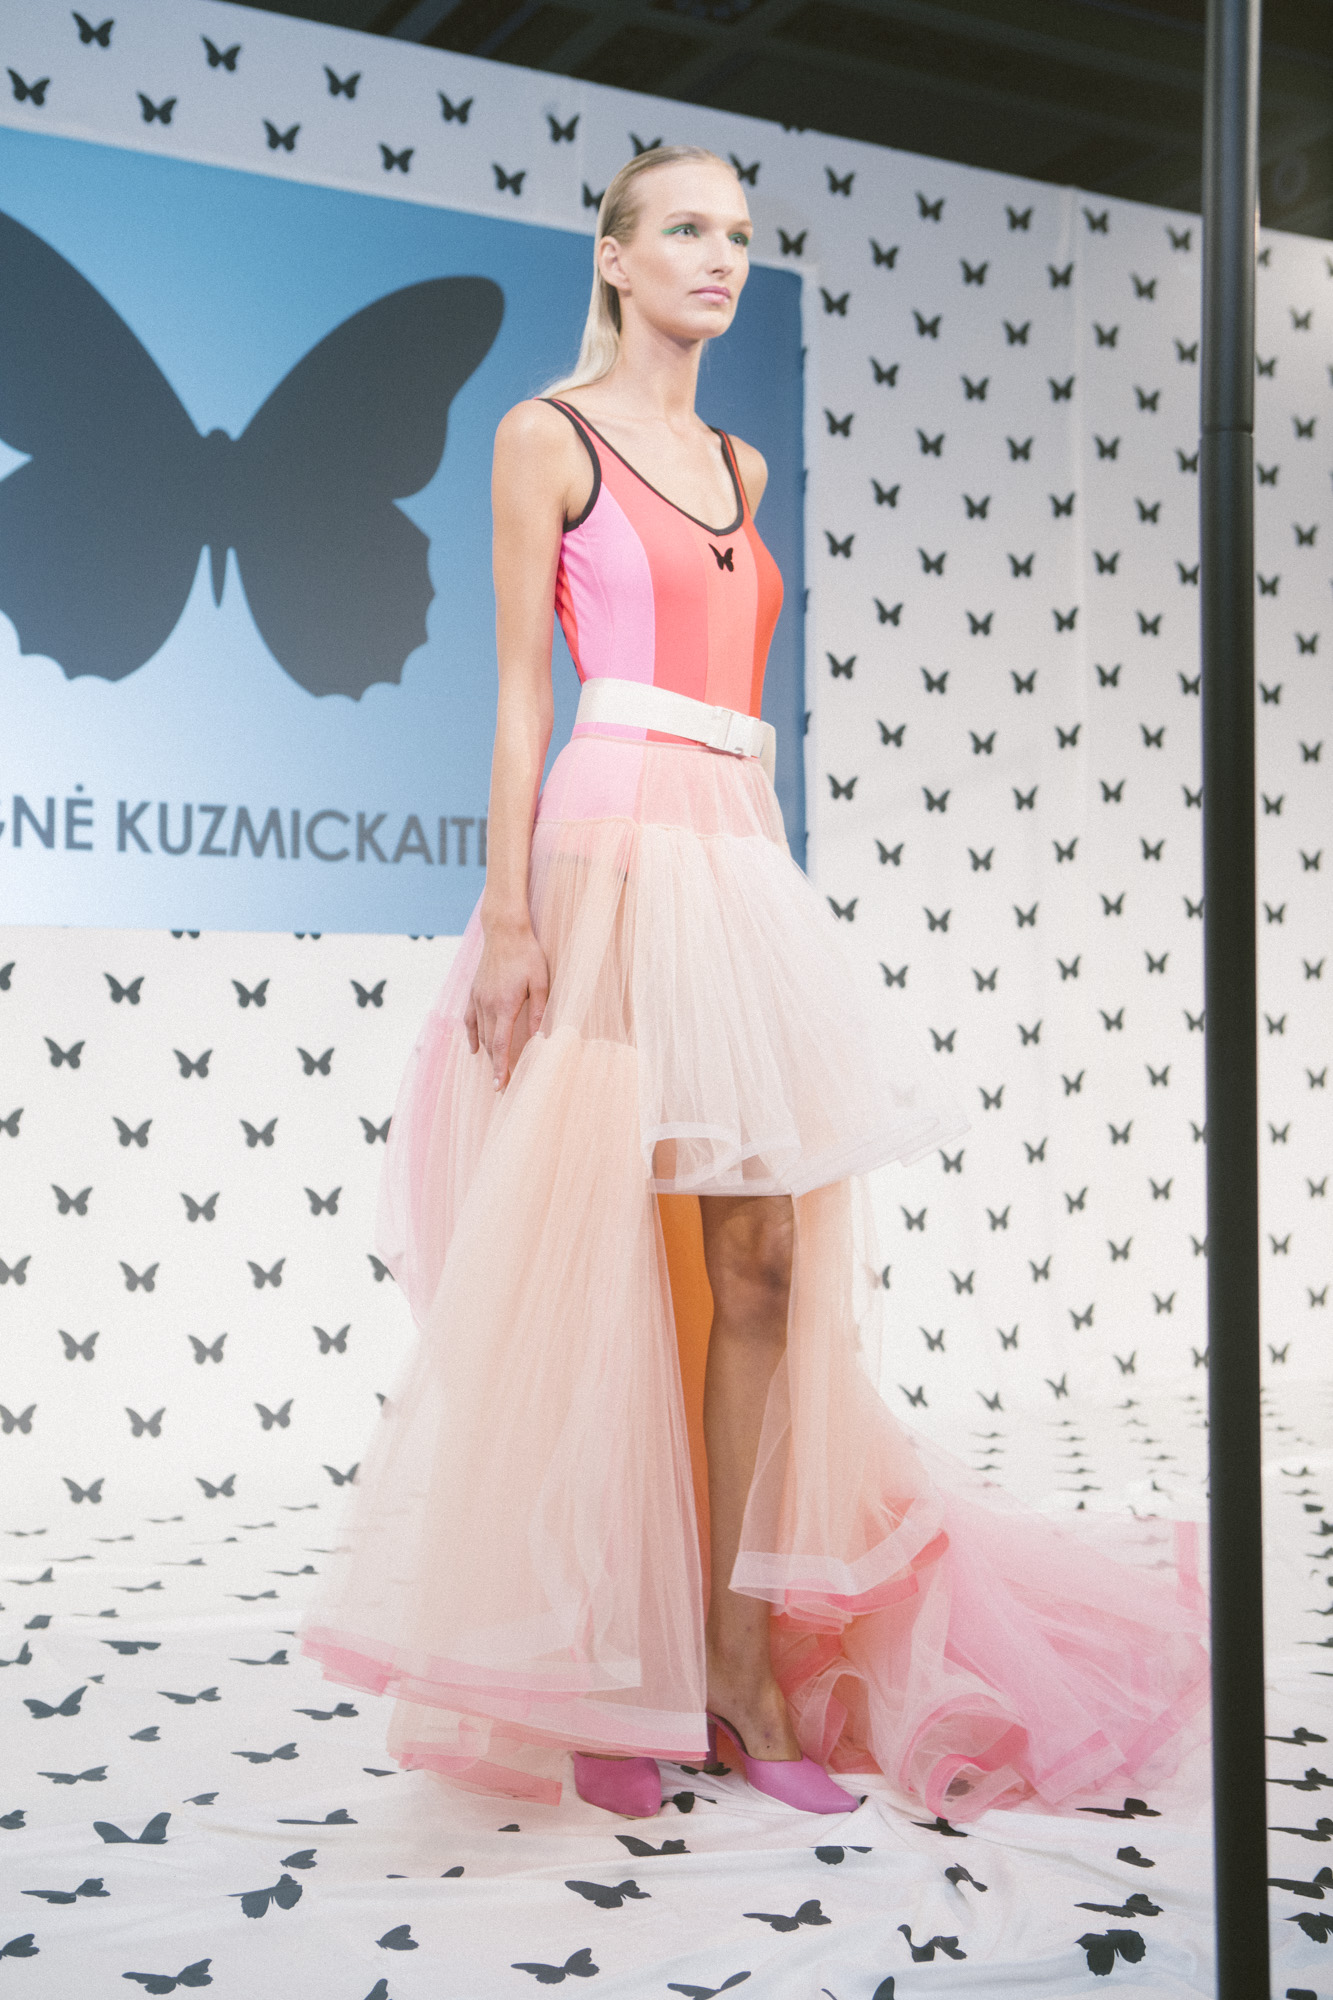 Catwalk Agne Kuzmickaite Photo by Rory James-2.jpg